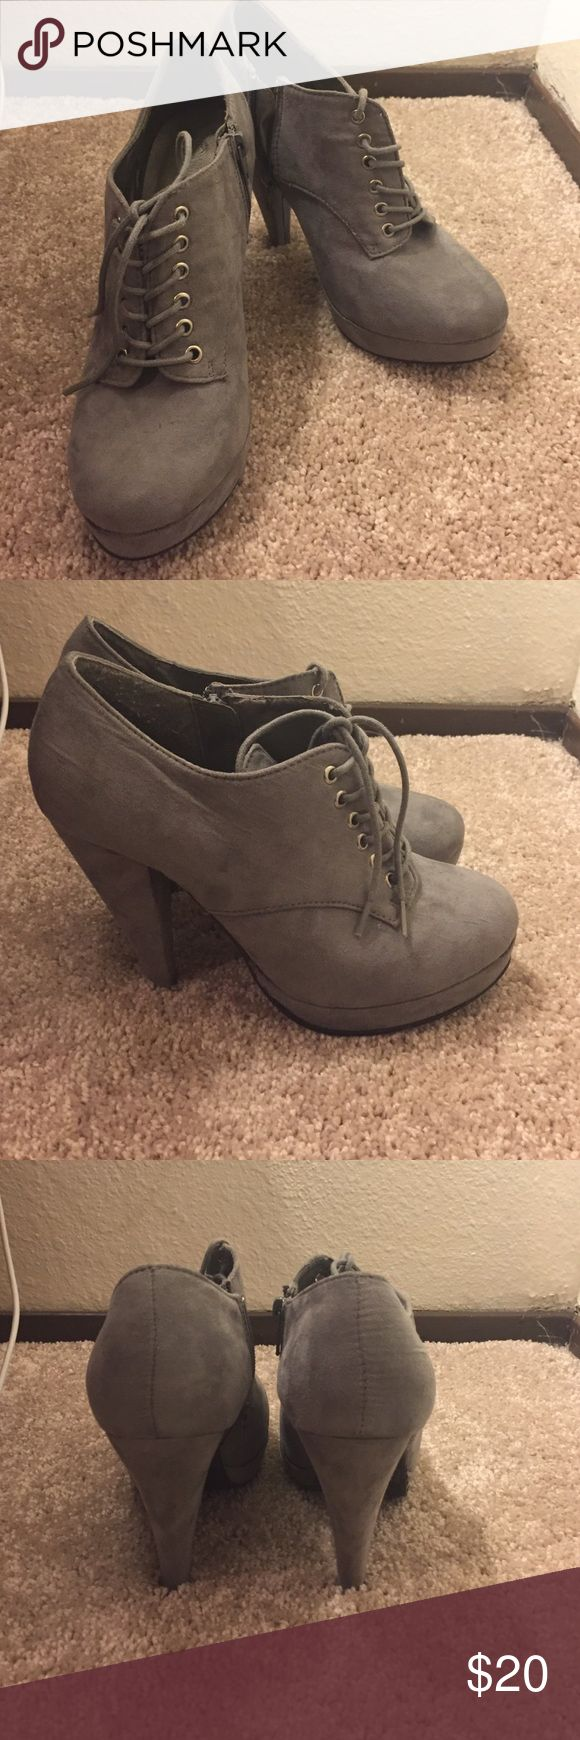 Grey Bootie Lightly worn grey bootie! Easy to dress up or down! Shoes Ankle Boots & Booties